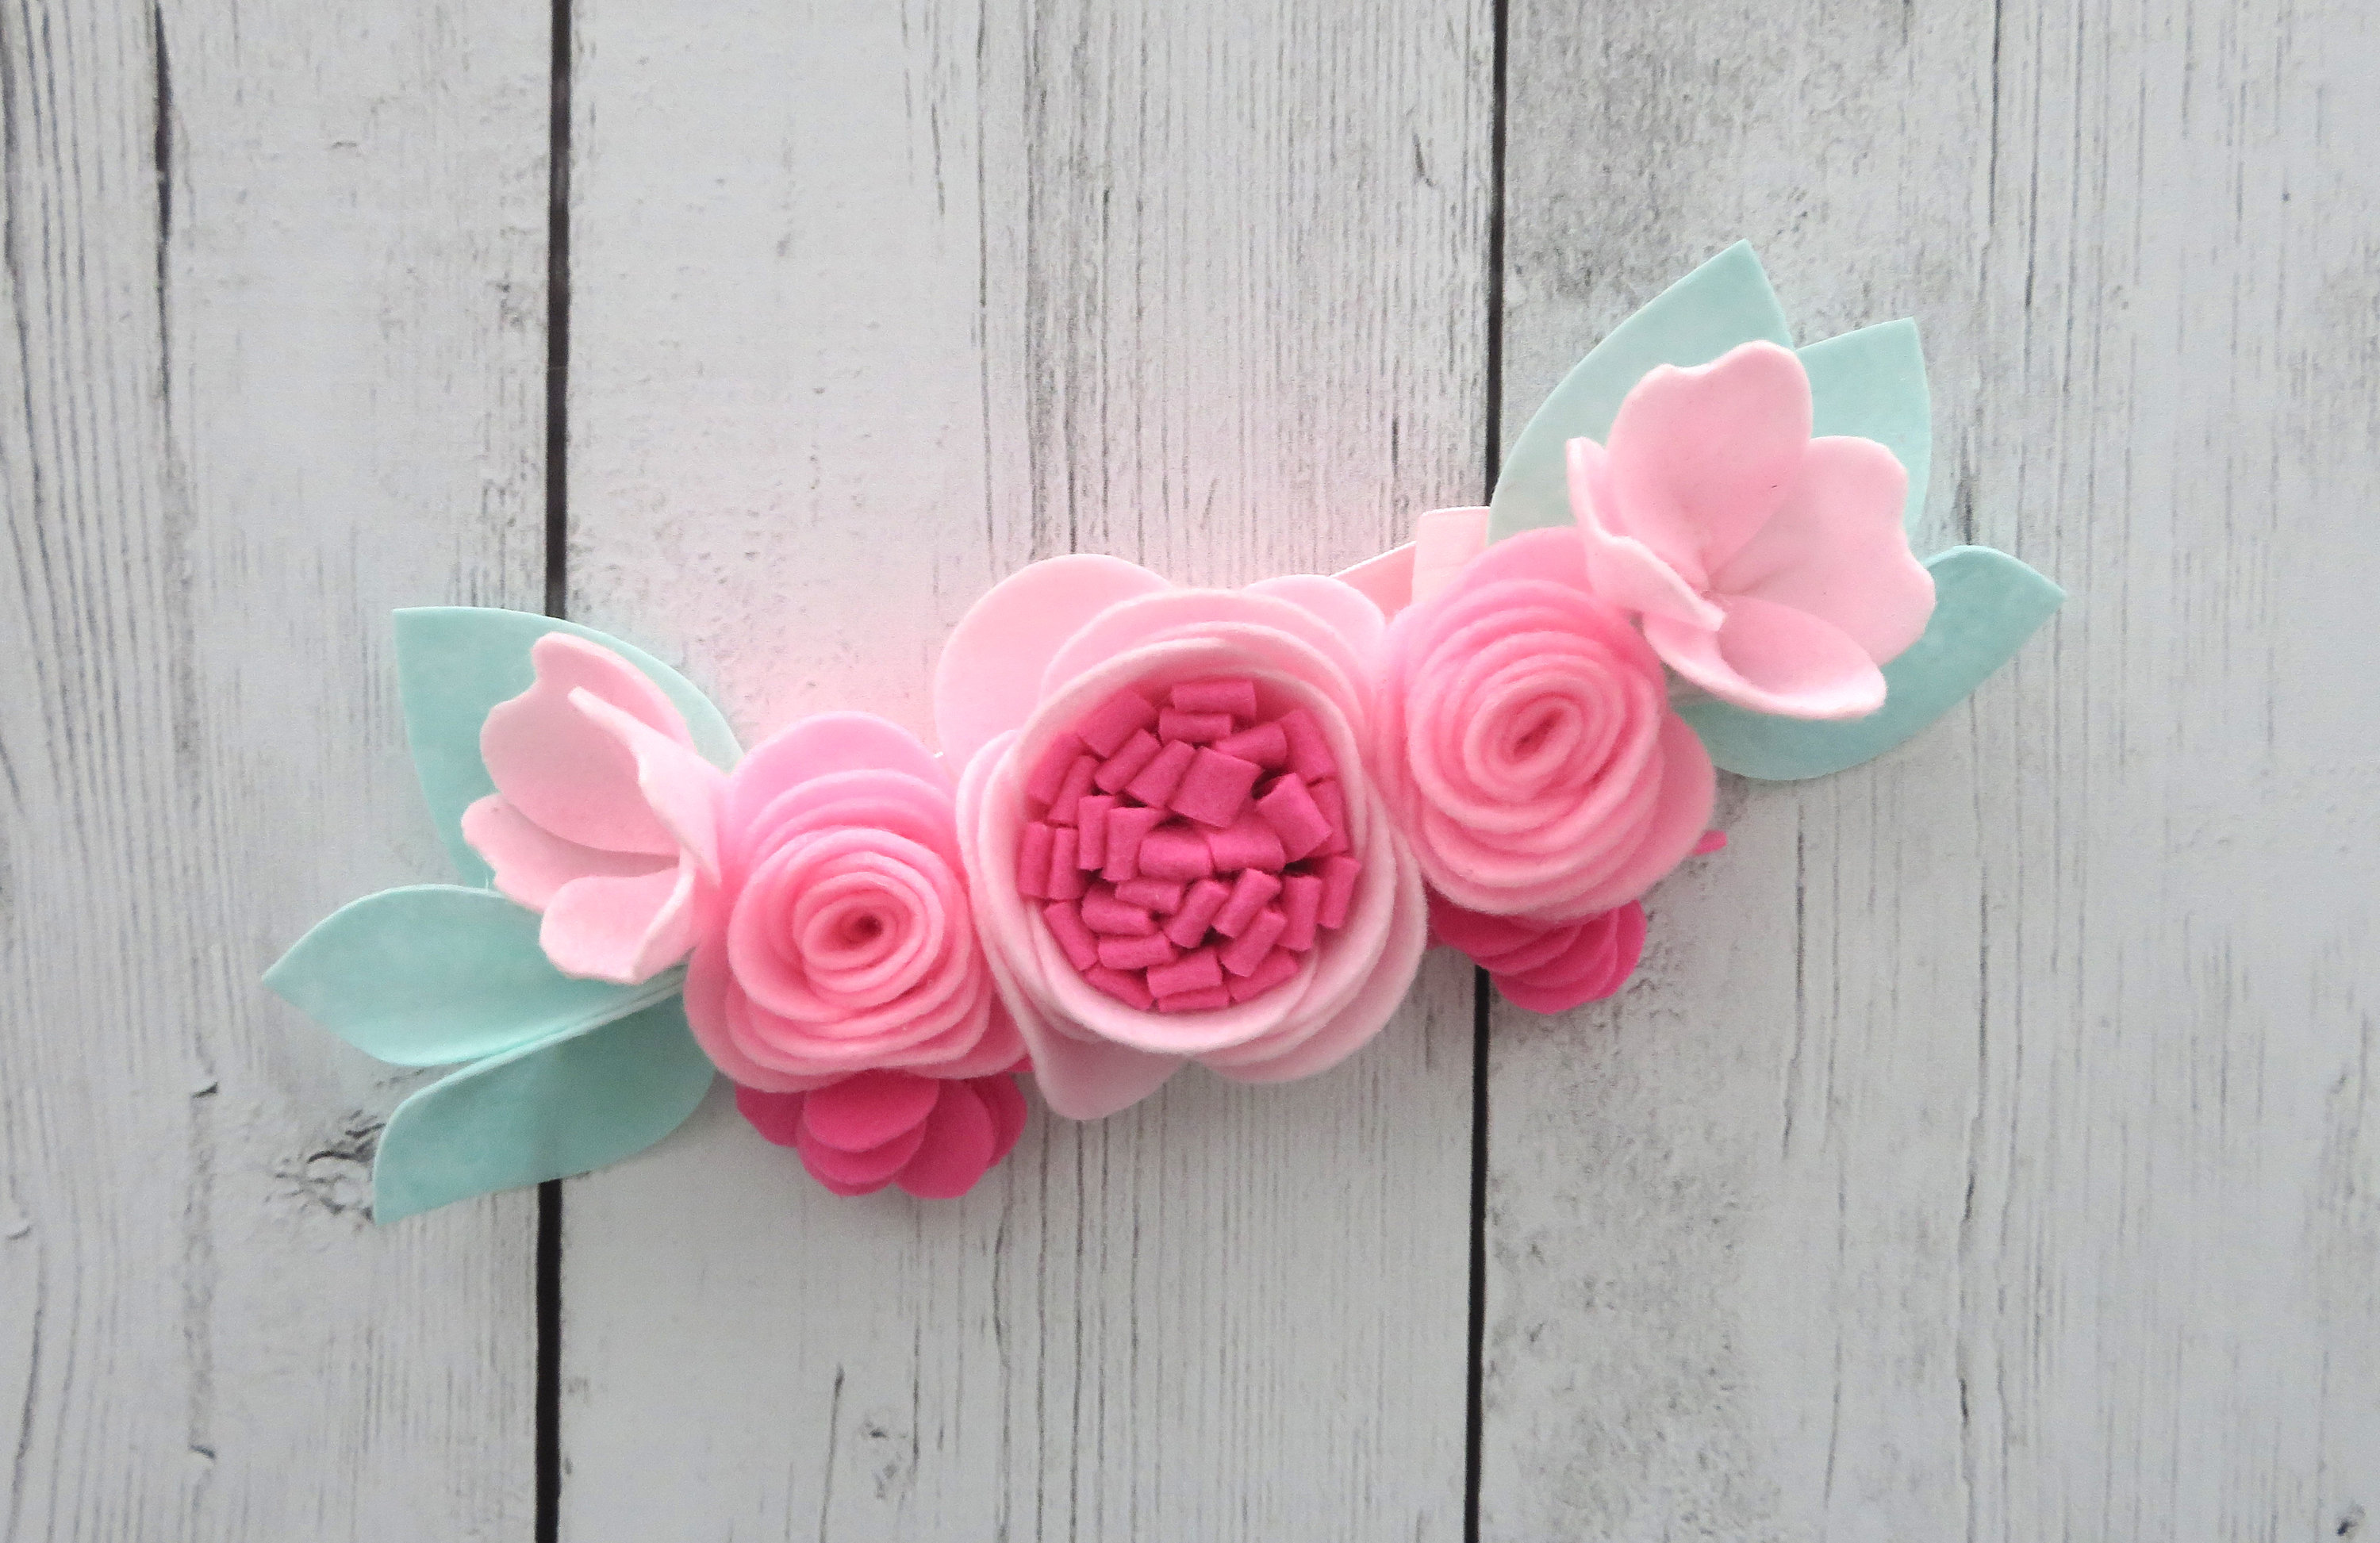 Floral Crown Headband for Girl - floral first birthday, felt flowers headband, pink floral crown, summer birthday, felt floral crown